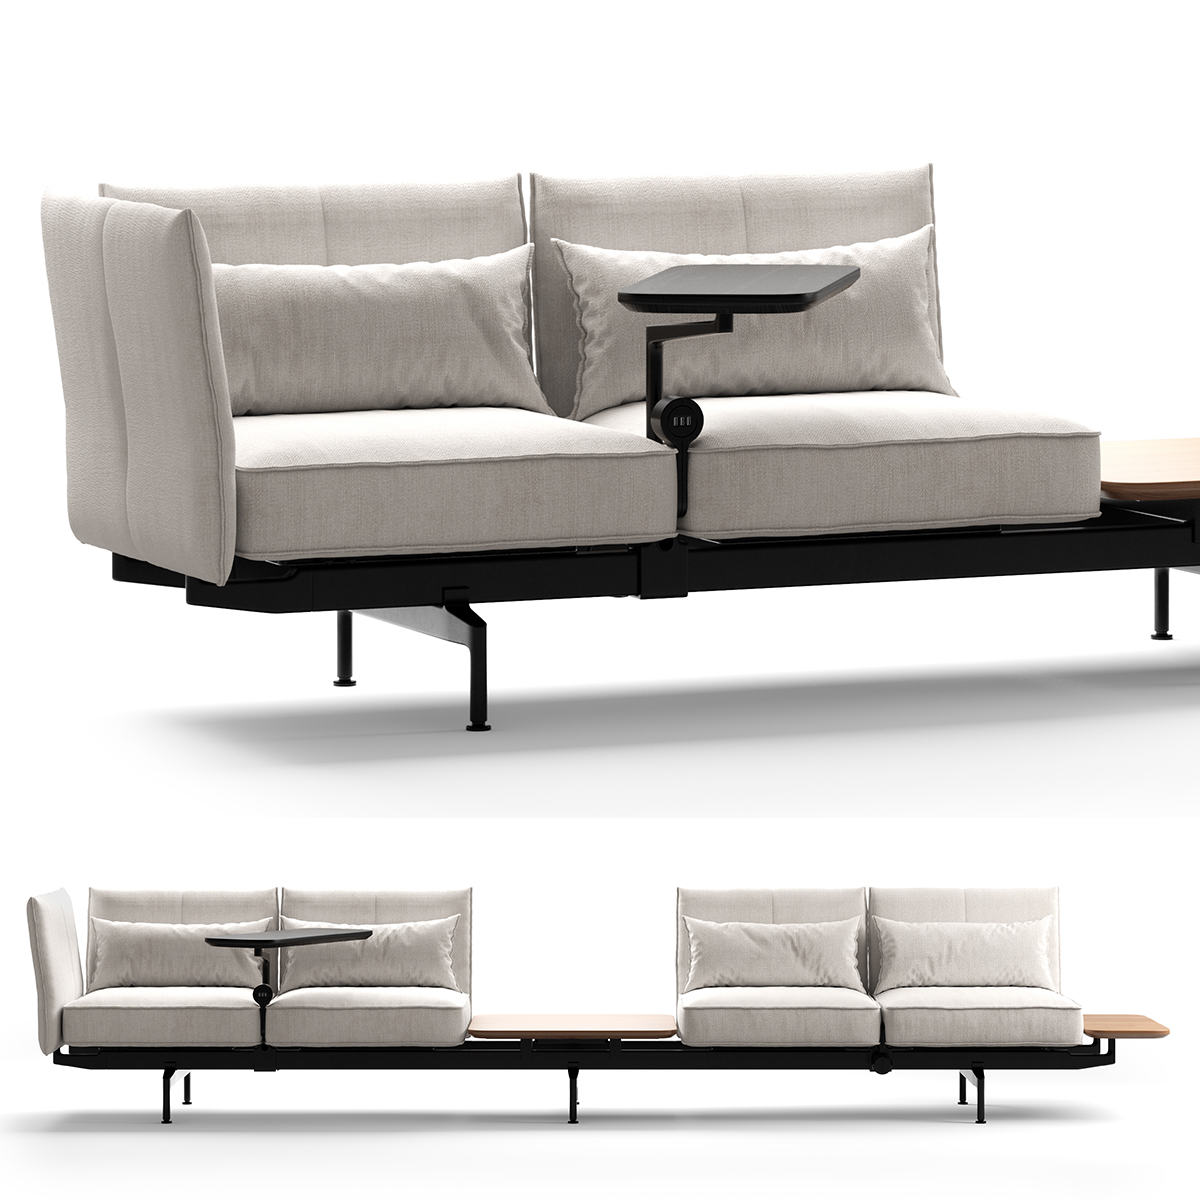 Full Size of Vitra Soft Modular Sofa Polder Plate Sofabord Noguchi Eames Marshmallow Cover Suita Sale 2 Seater Gebraucht Bed Work 3d Modell Turbosquid 1410047 Karup Sofa Vitra Sofa